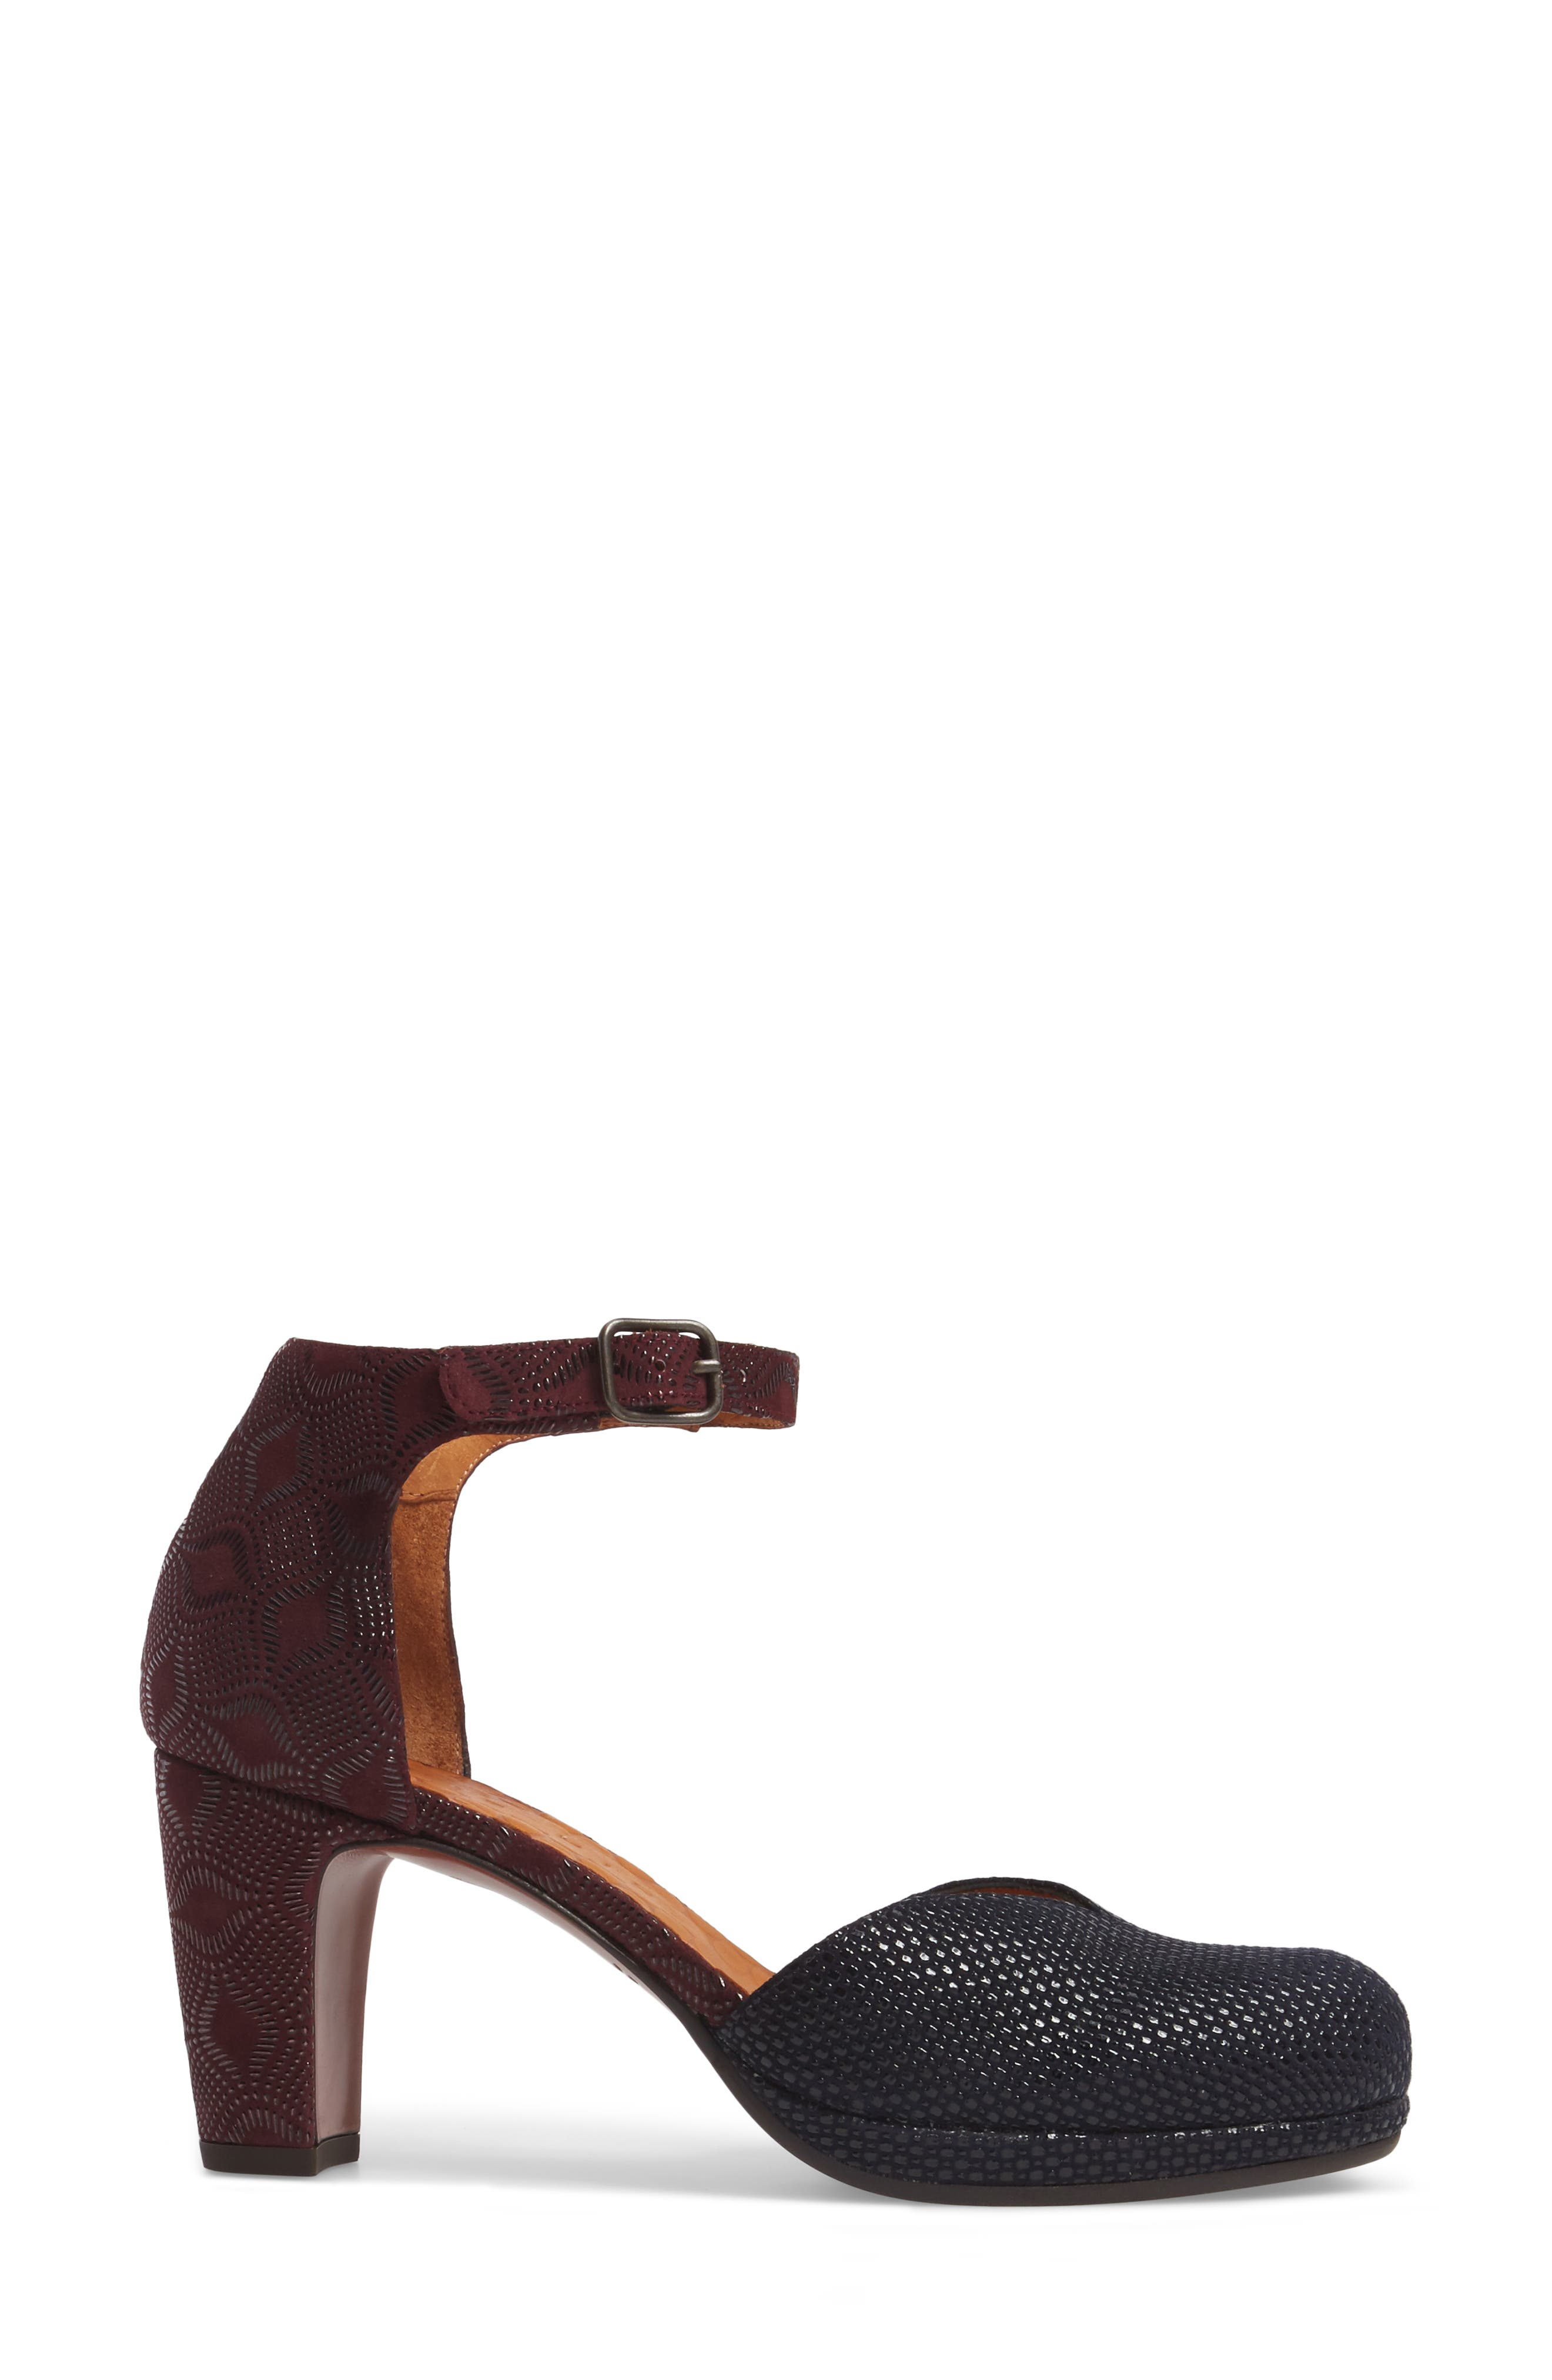 Maho d'Orsay Ankle Strap Pump,                             Alternate thumbnail 3, color,                             Navy